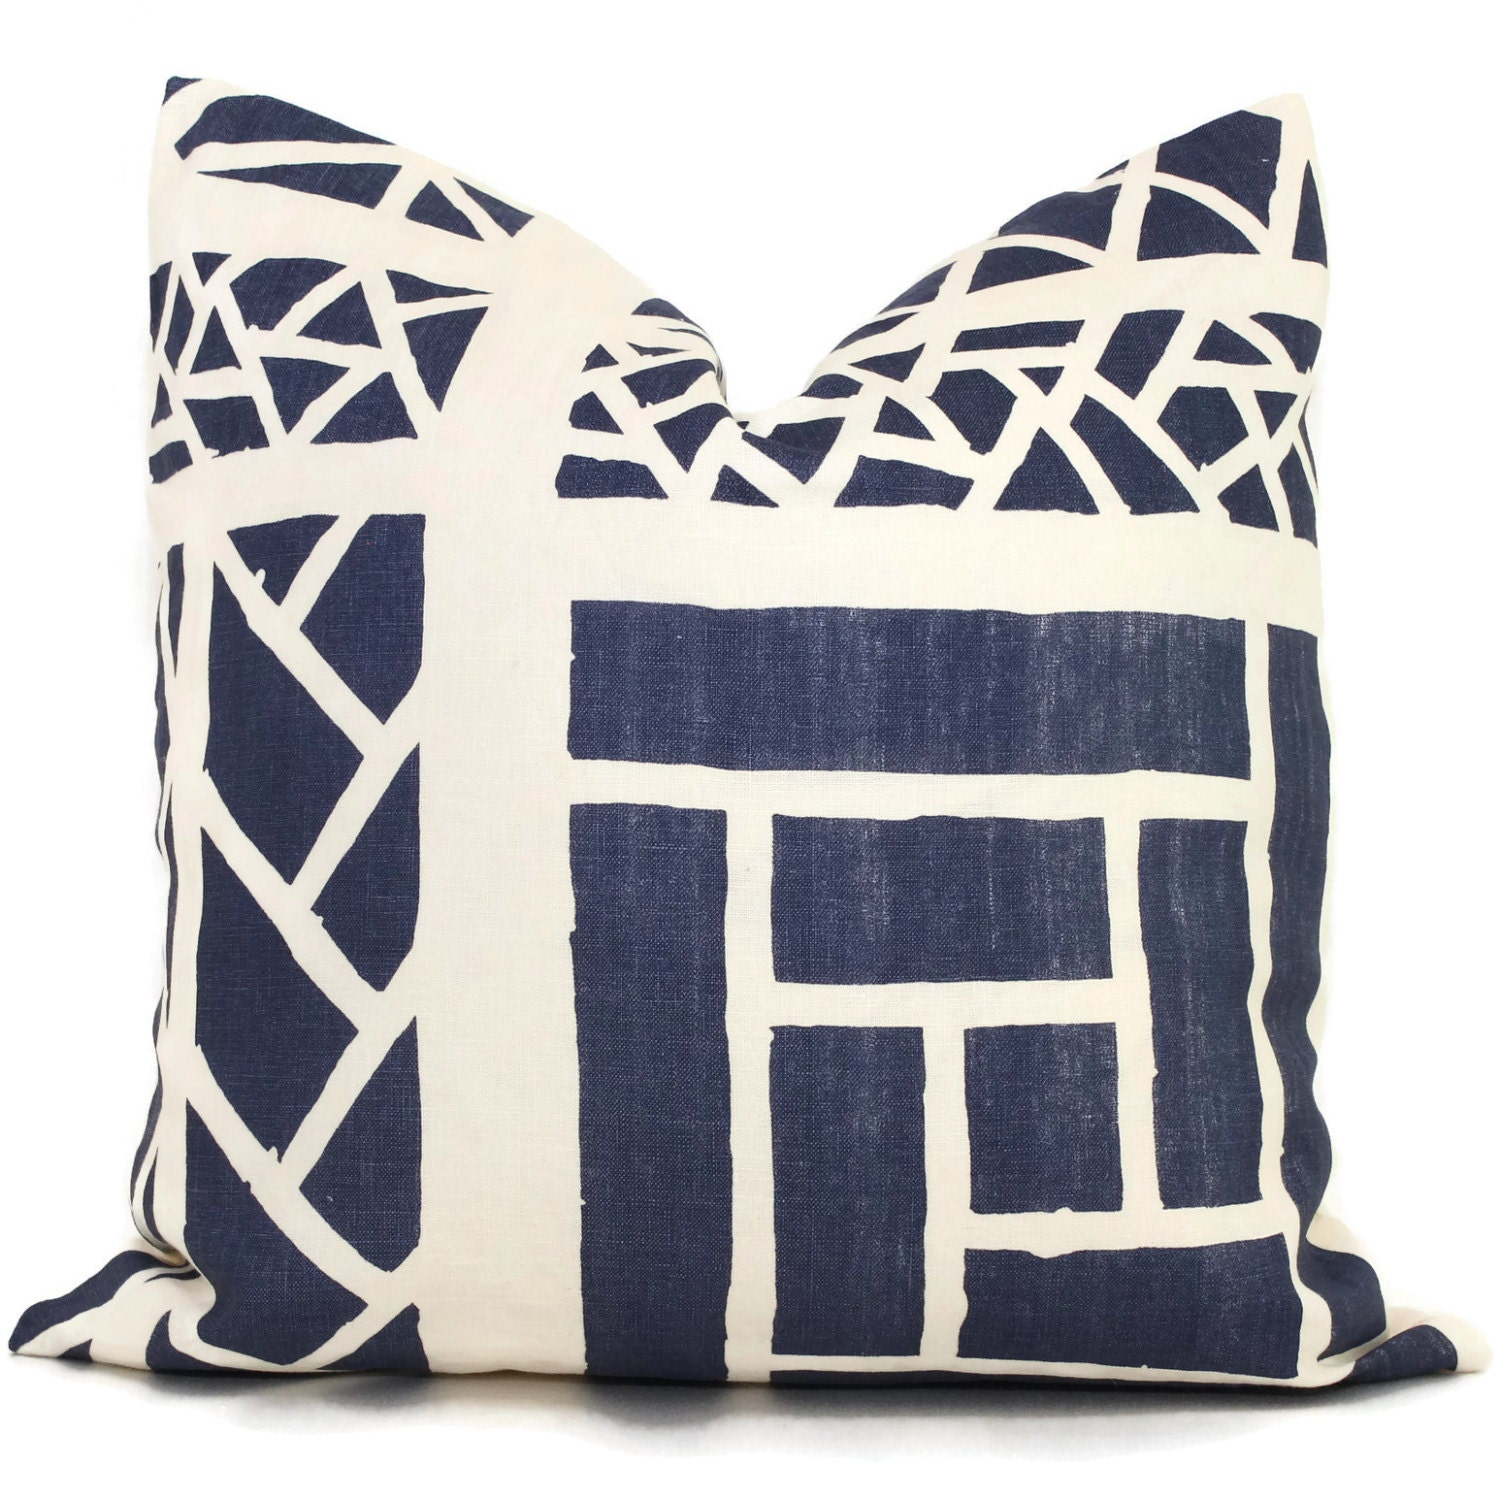 Queen Throw Pillows : Quadrille China Seas Navy Blue Trellis Stripe Print Pillow